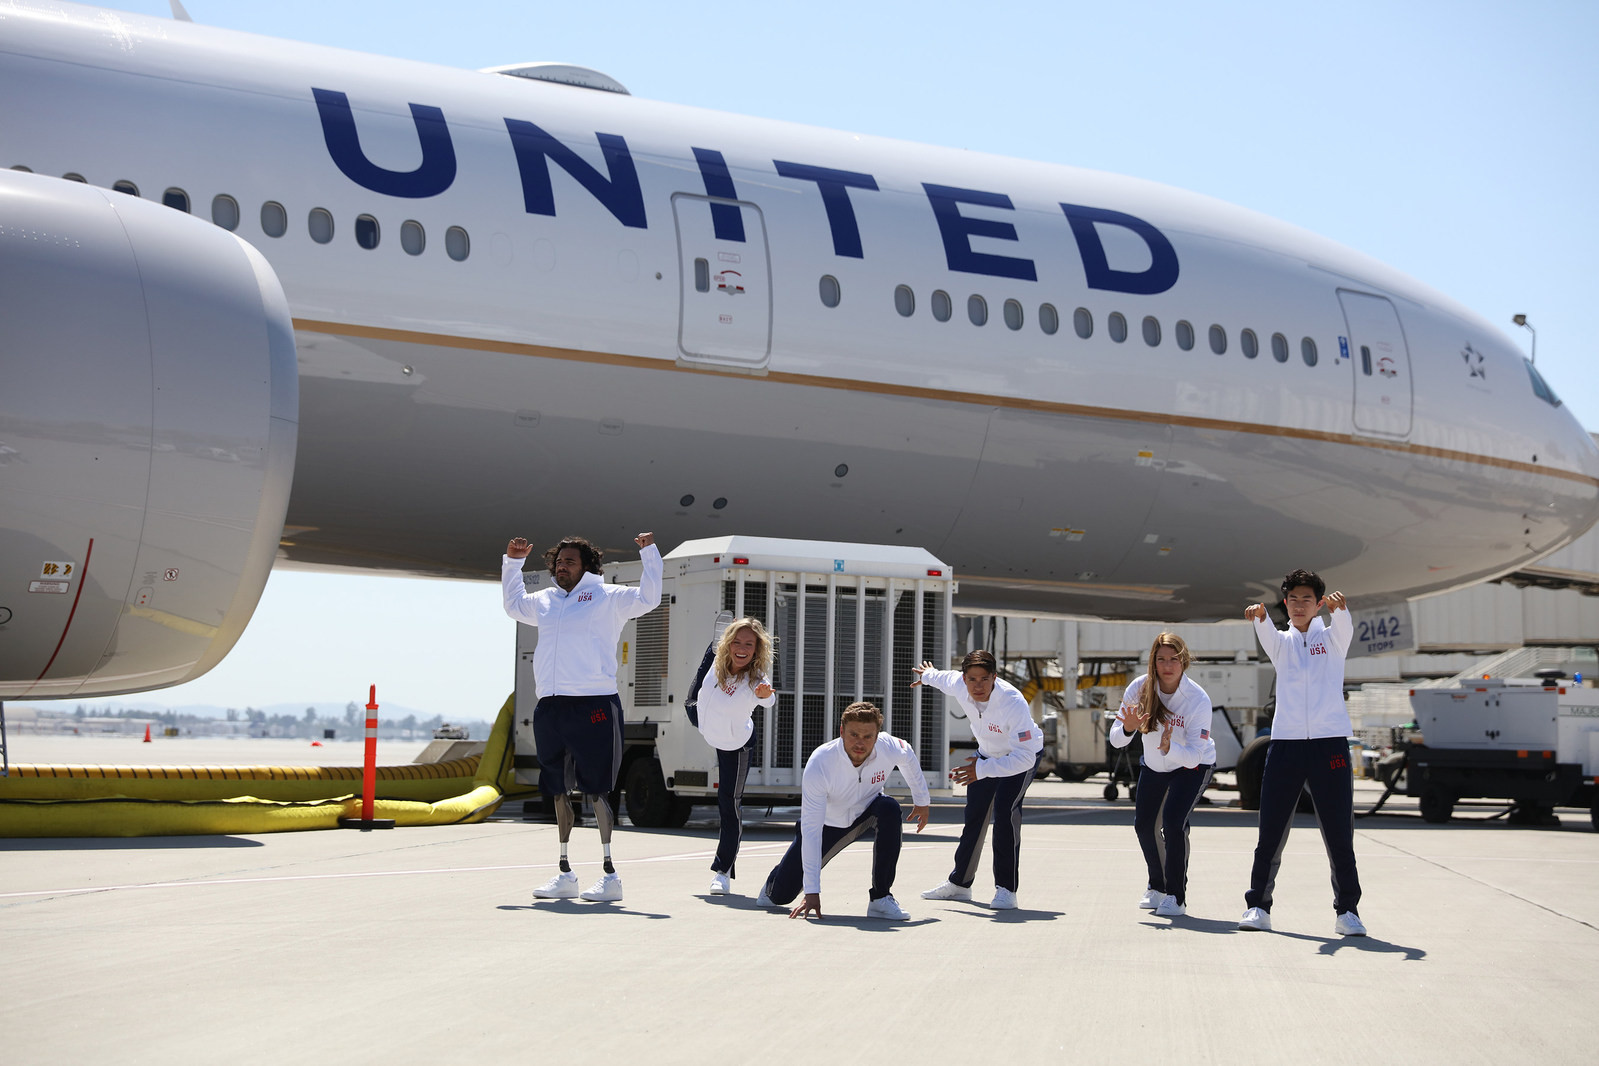 United Airlines announce backing for six American athletes for Pyeongchang 2018